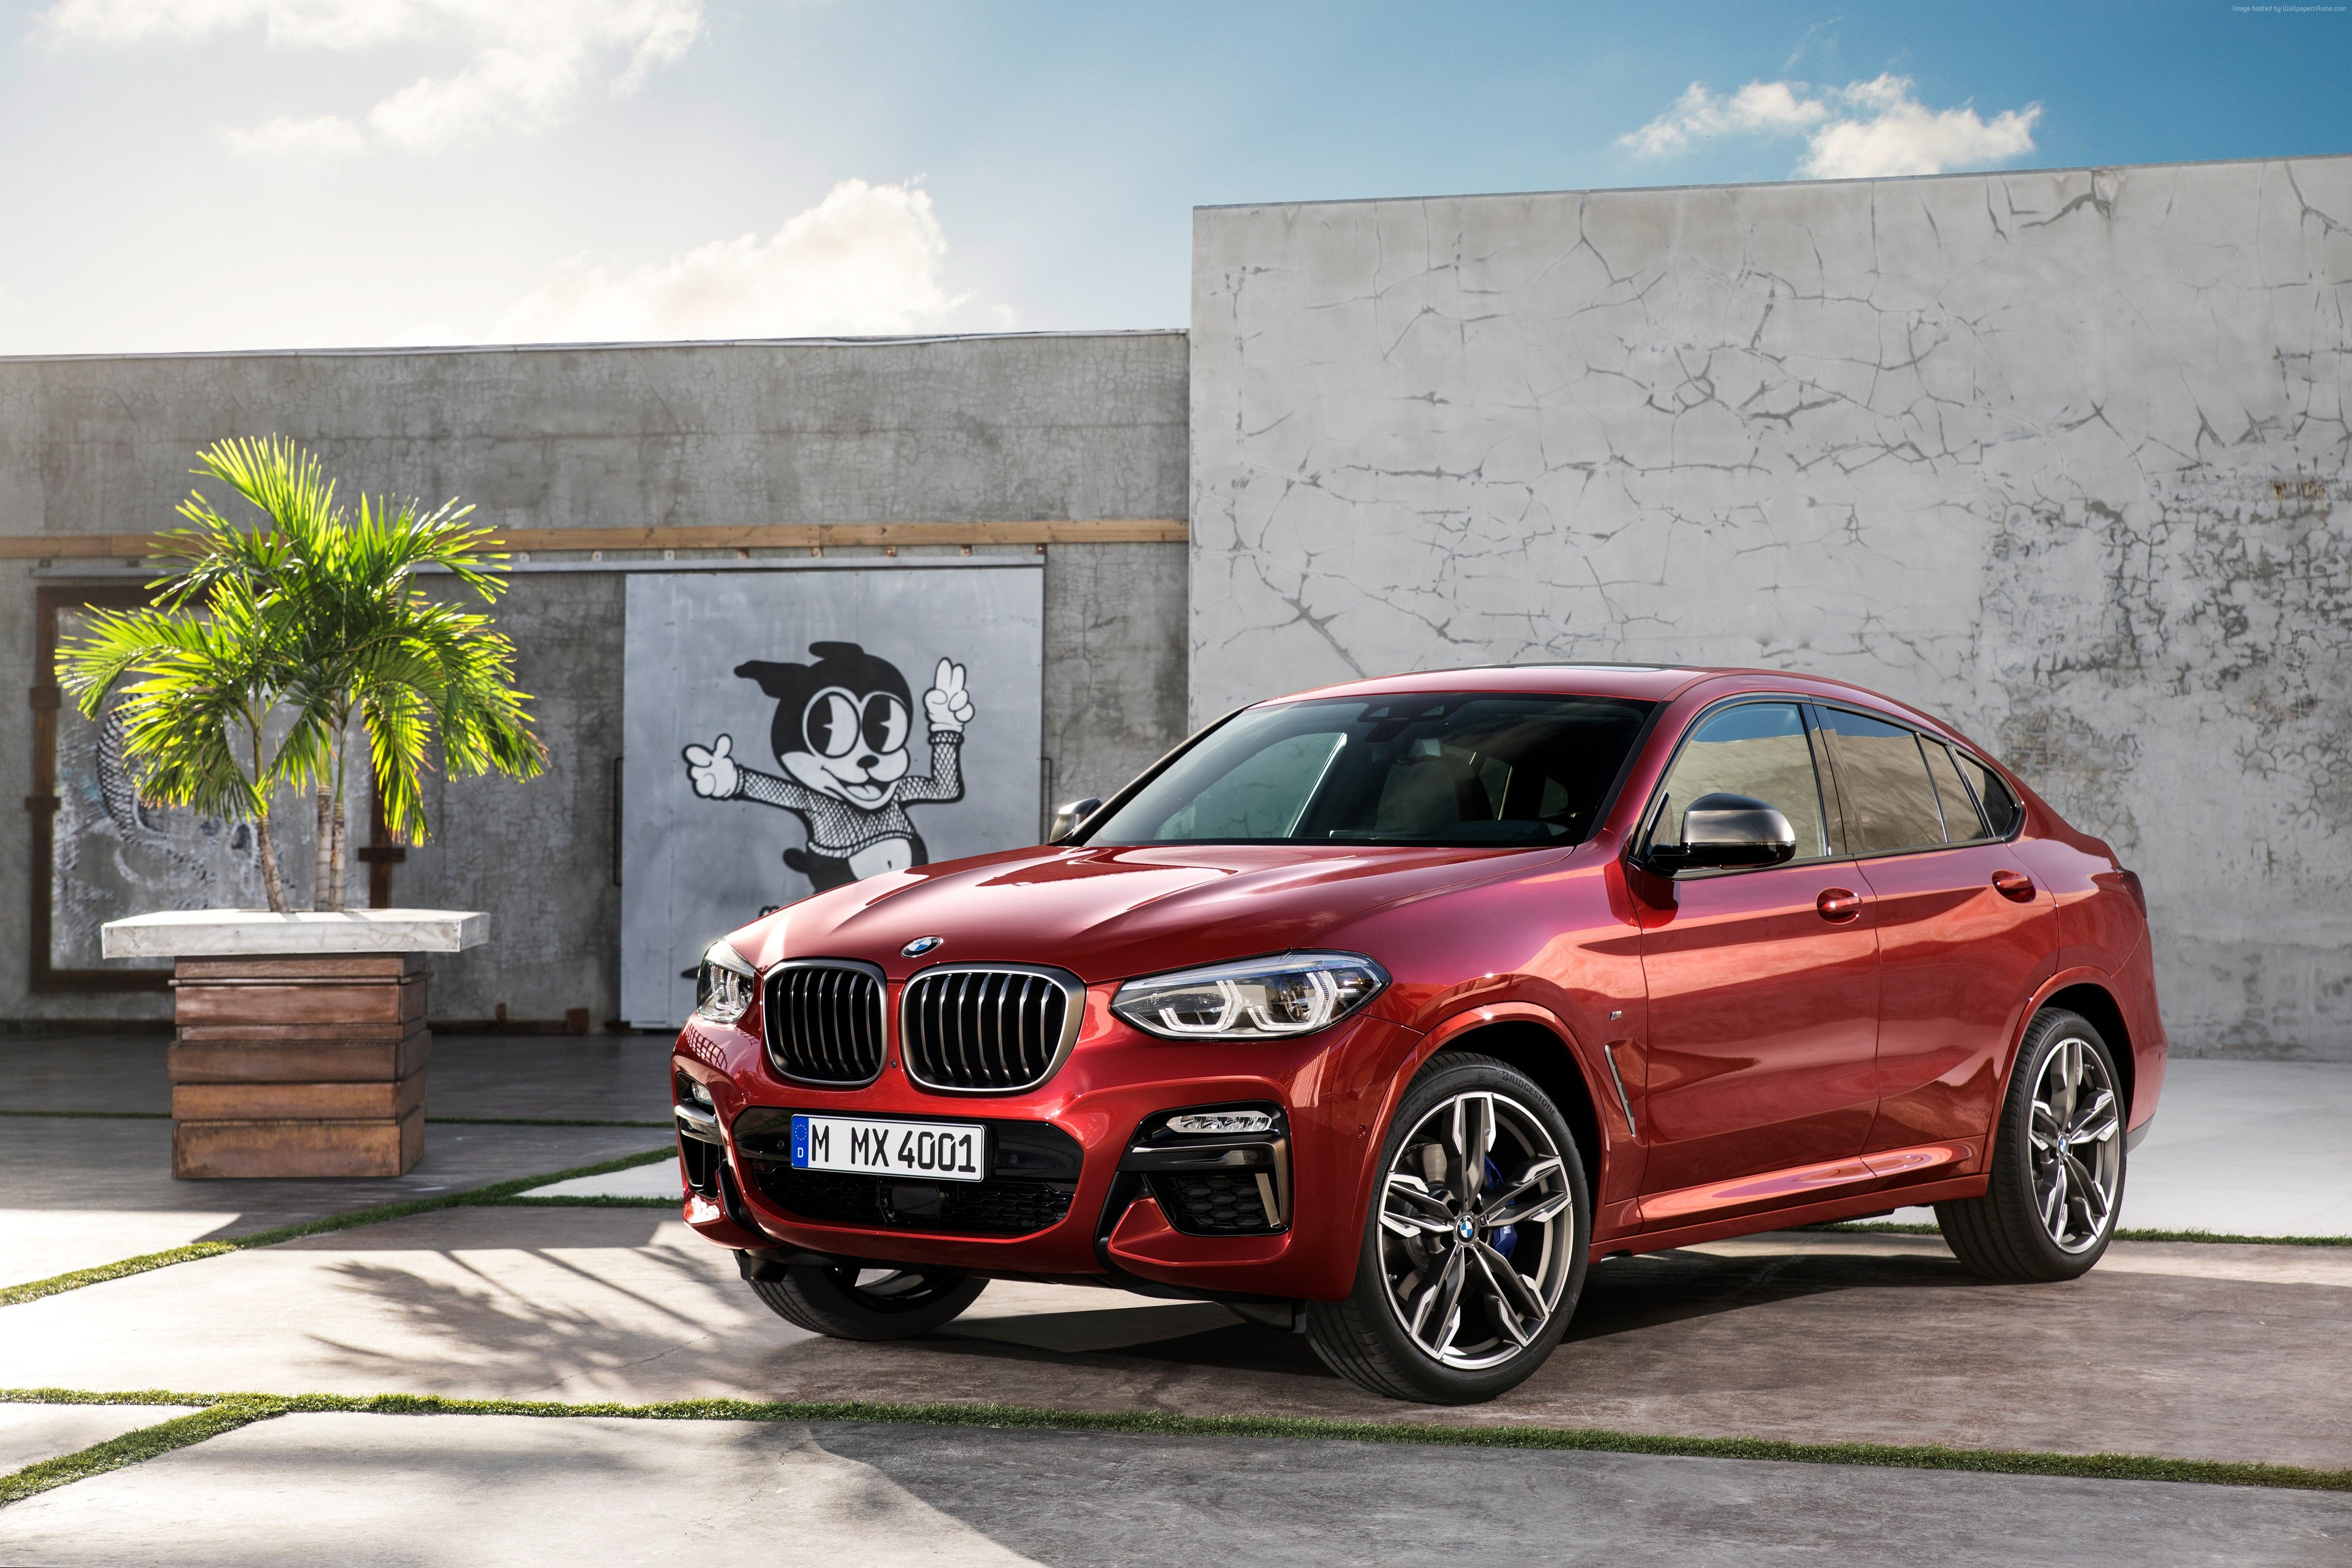 Wallpaper Wallpapers Coolwall Cars Bmw Bmwx4 Coolimage Oboi